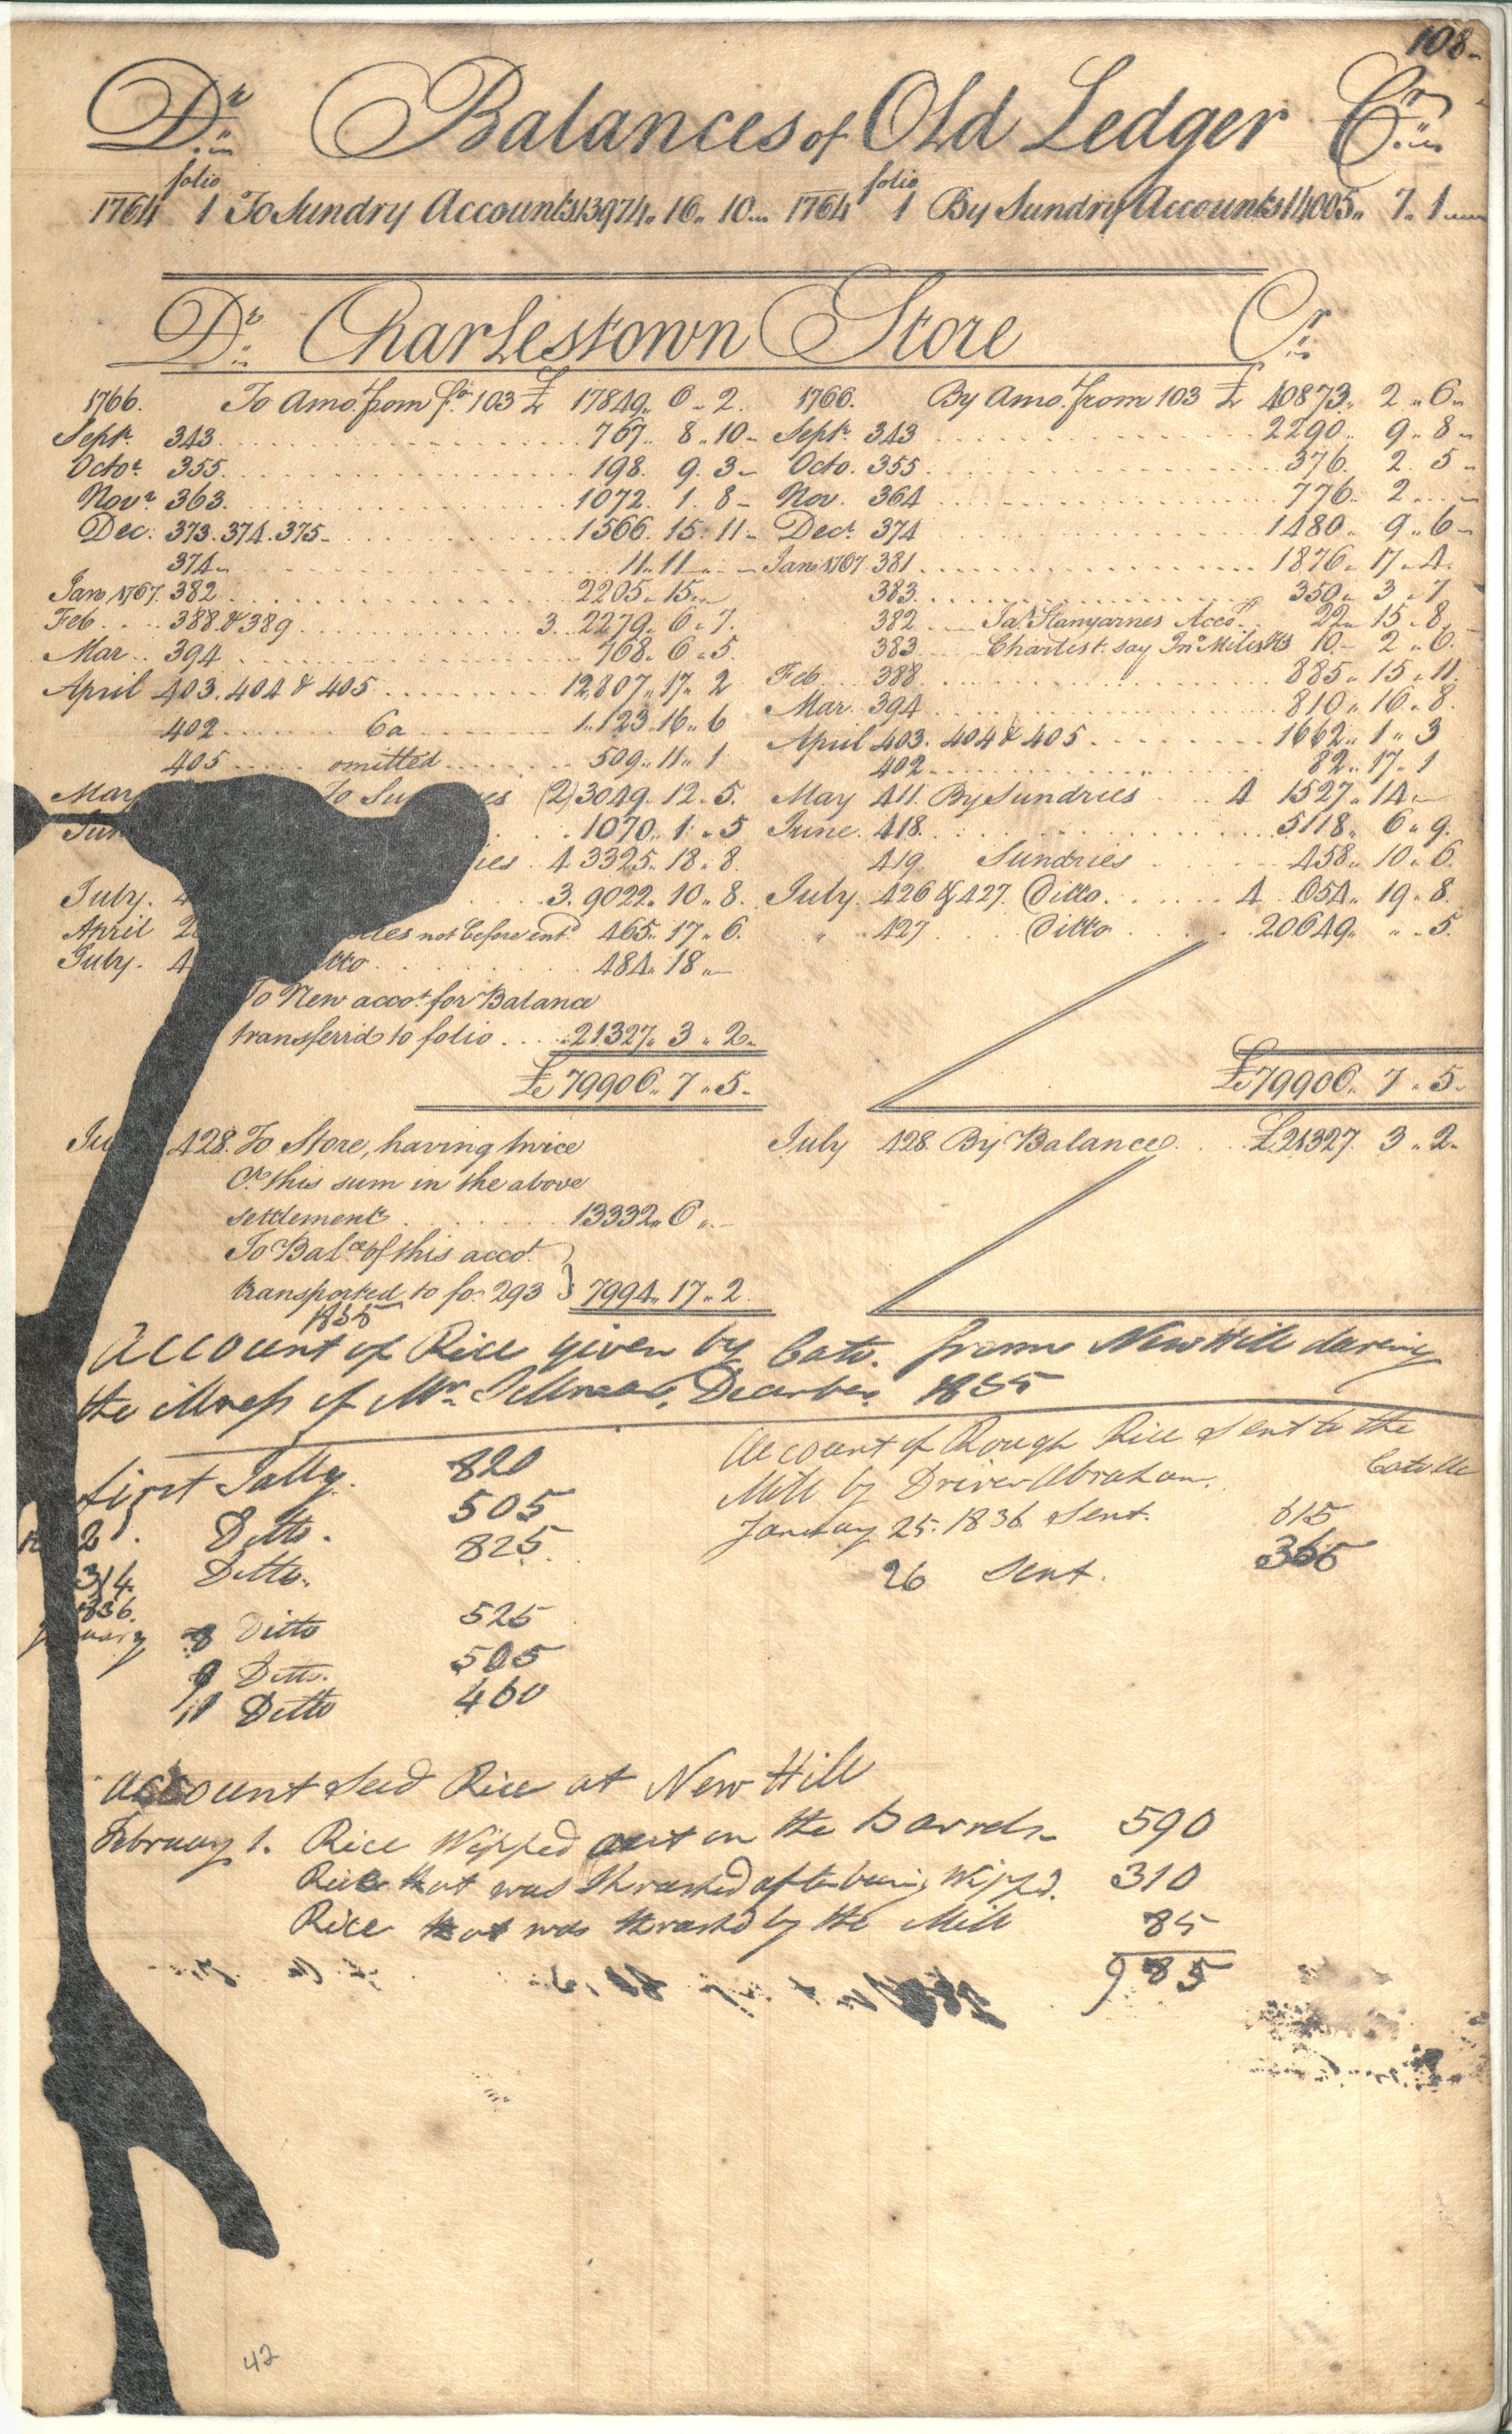 Plowden Weston's Business Ledger, page 108